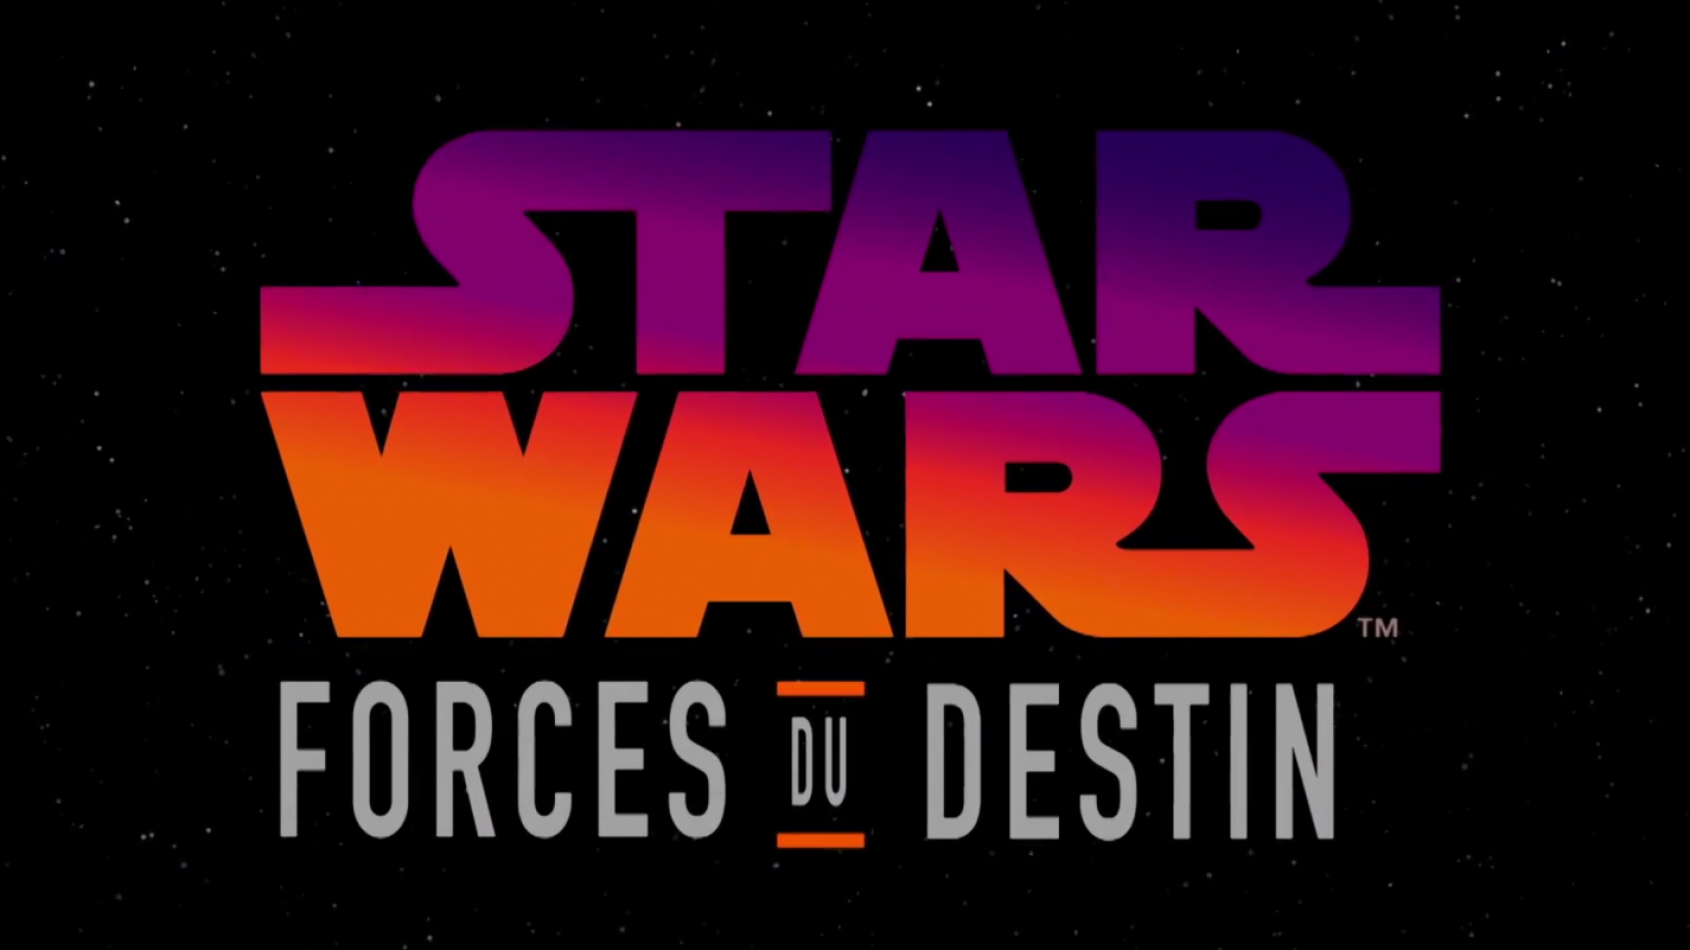 Le premier épisode de 'Forces du Destin' disponible en VF !